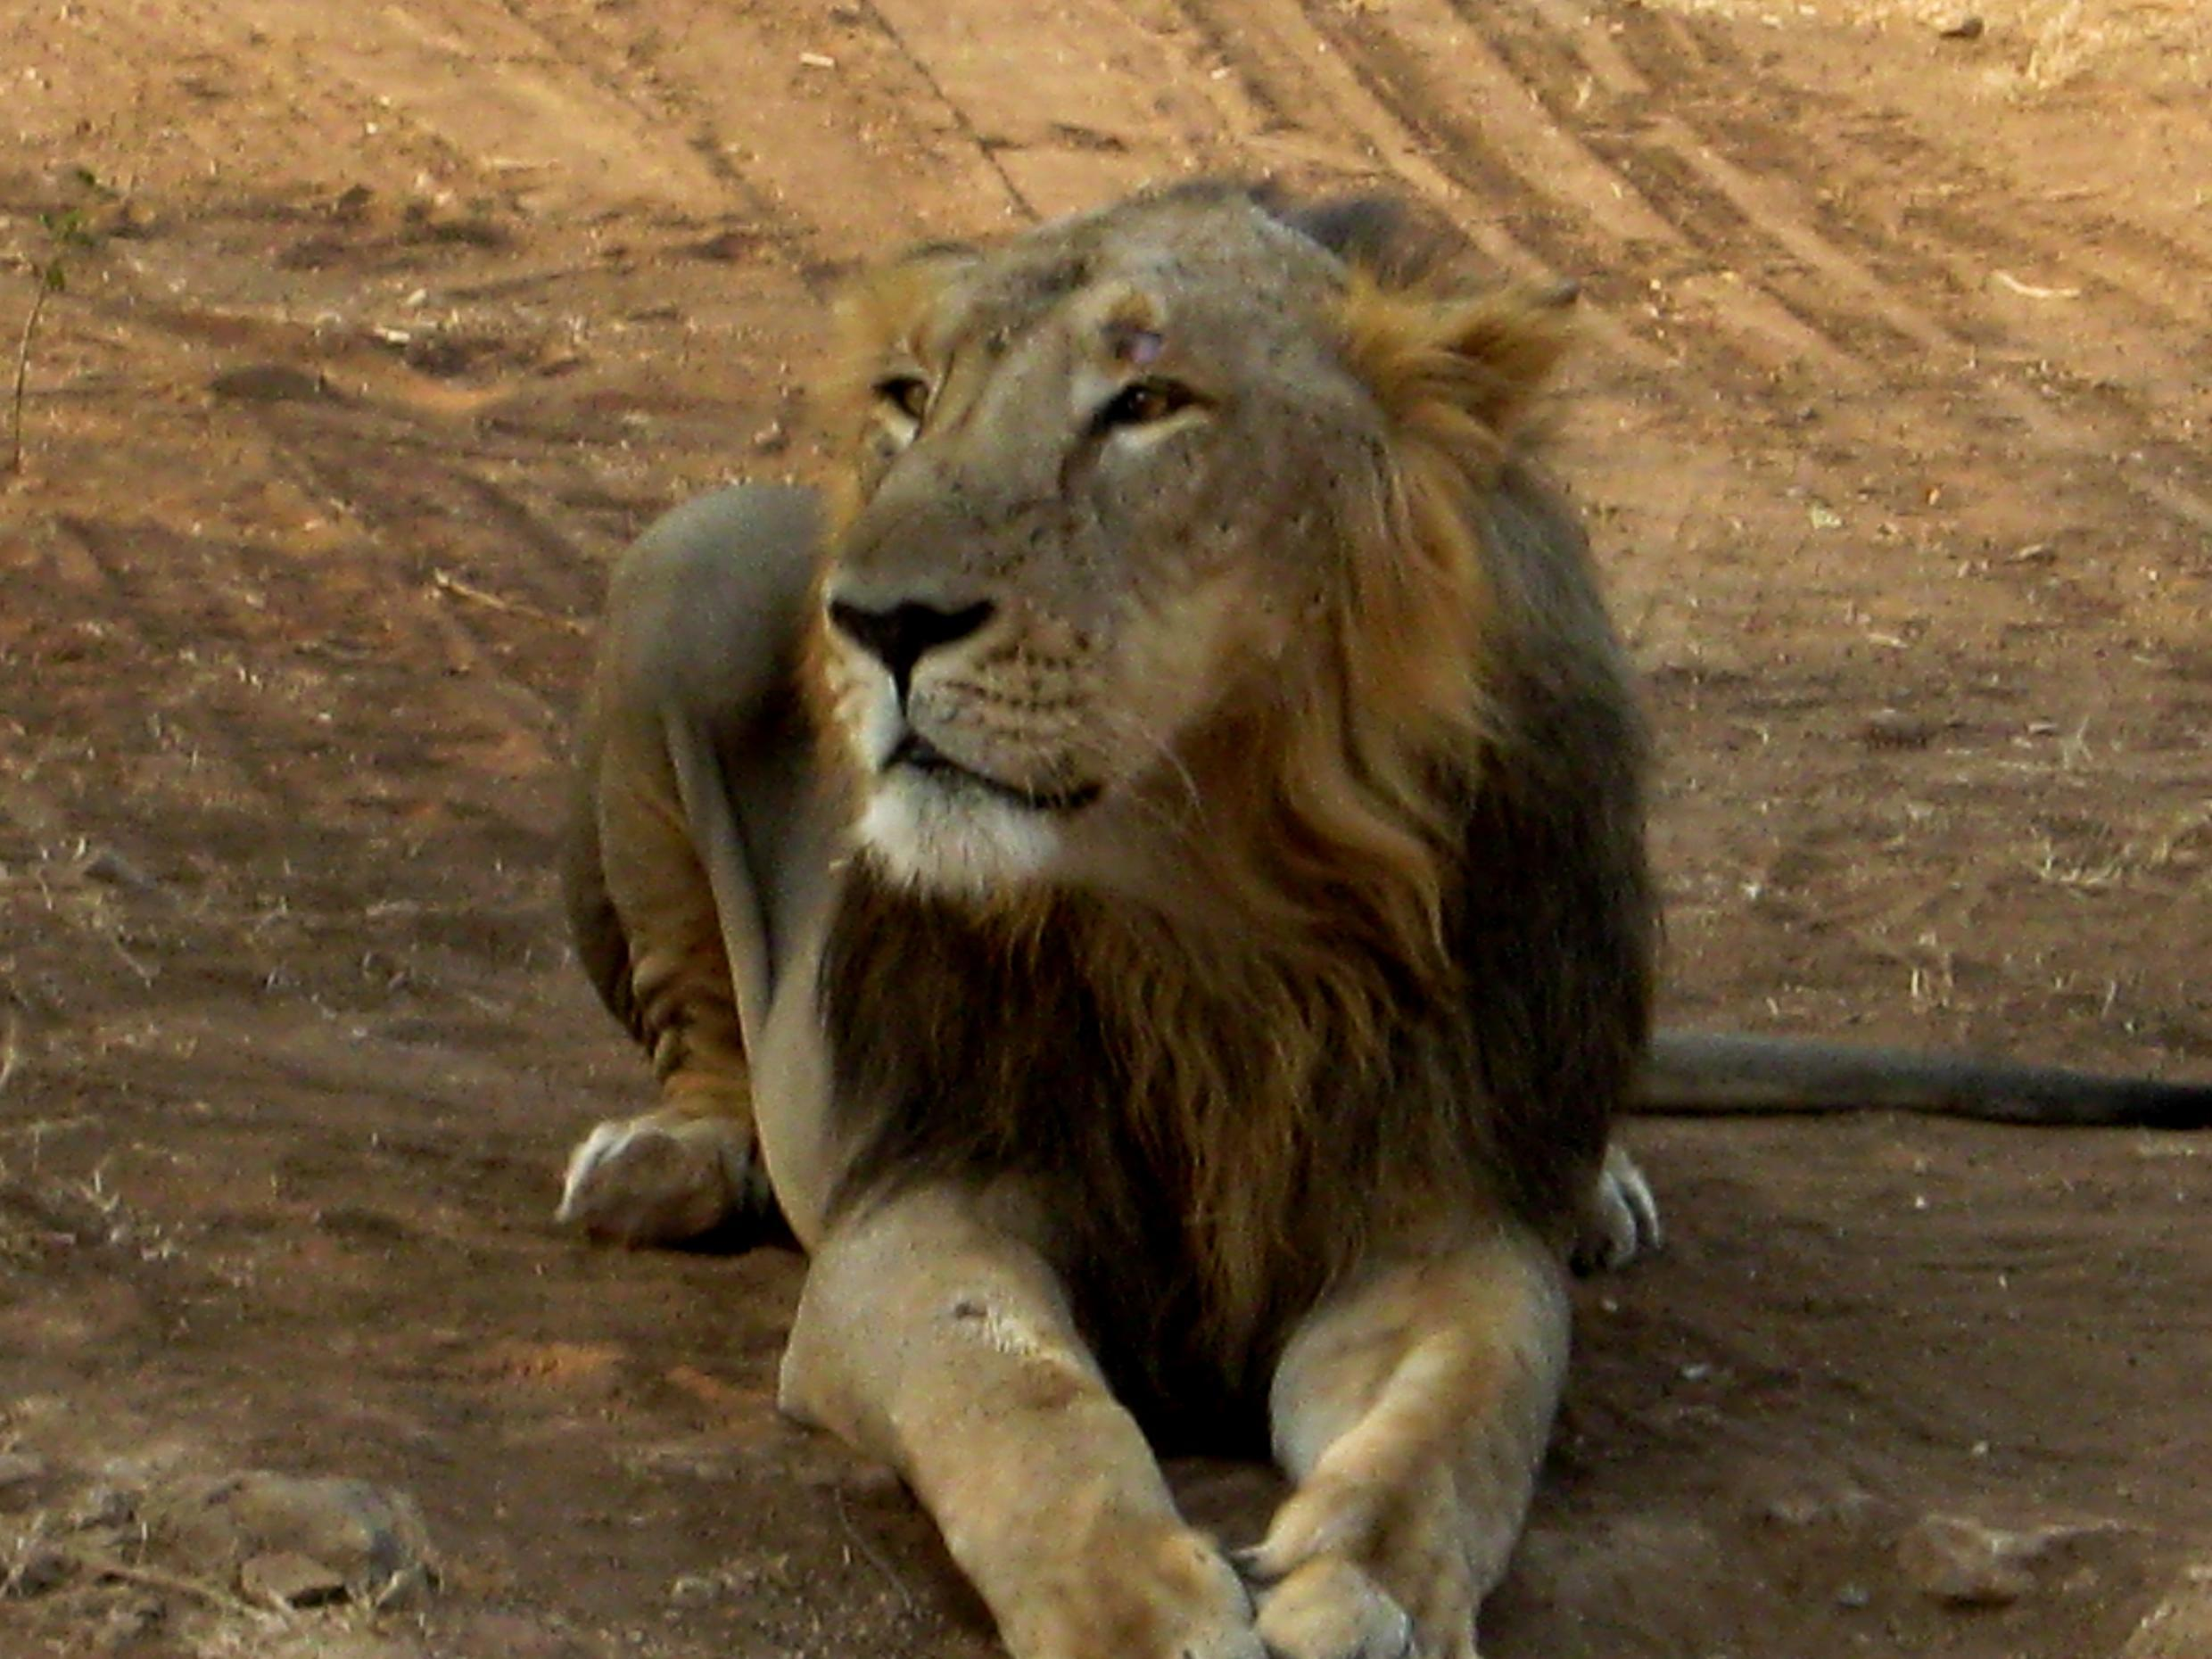 An Asiatic lion in the Gir forest, India